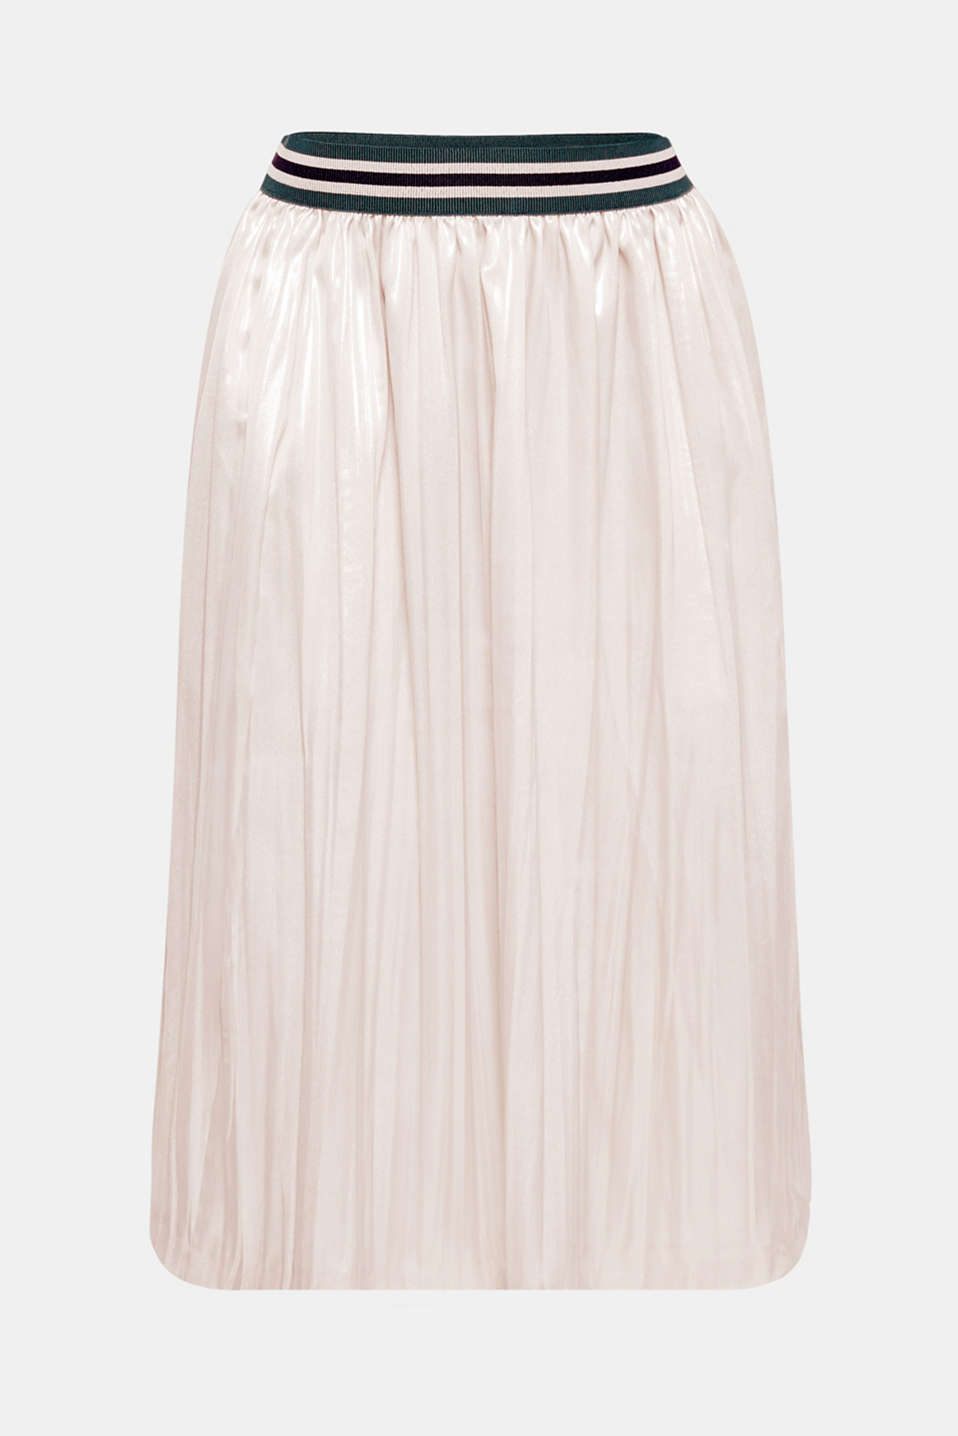 Gorgeously glittery! The stunning, shimmering metallic coating and striped, elasticated waistband give this midi skirt an extremely eye-catching, sporty twist.